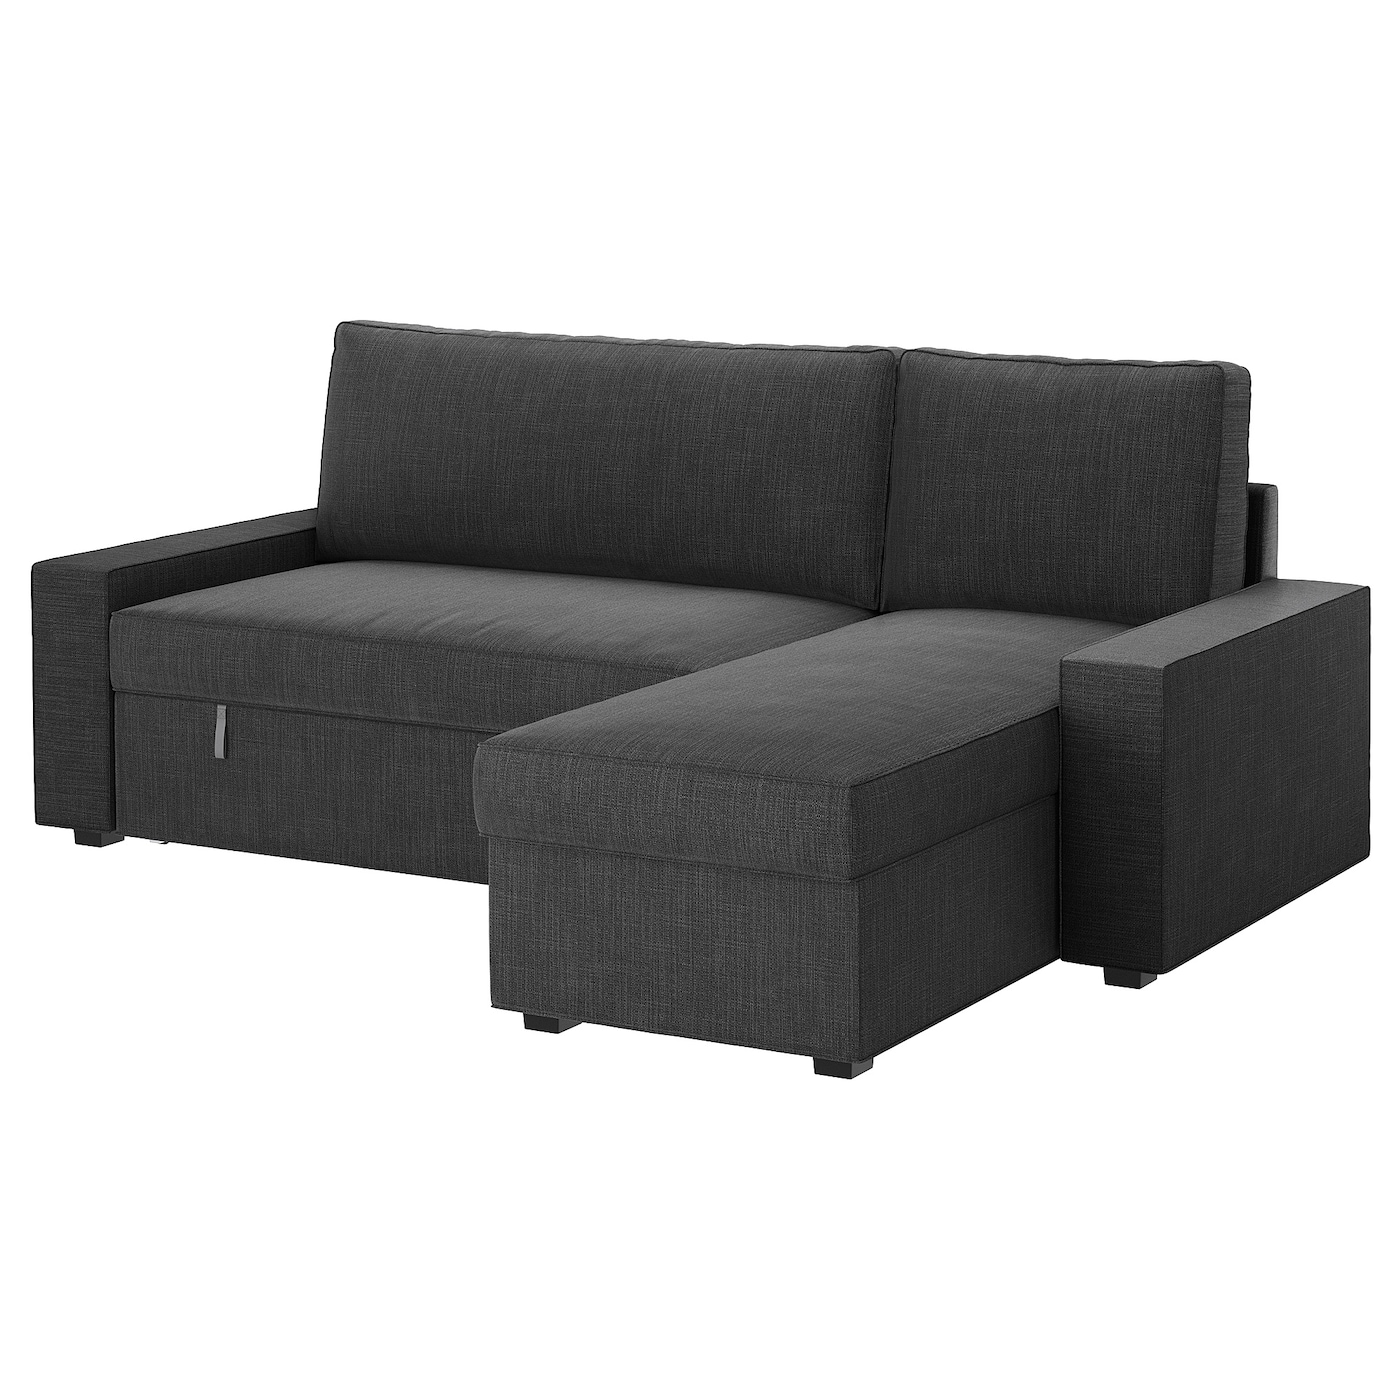 Vilasund sofa bed with chaise longue hillared anthracite for Oferta sofa cama chaise longue